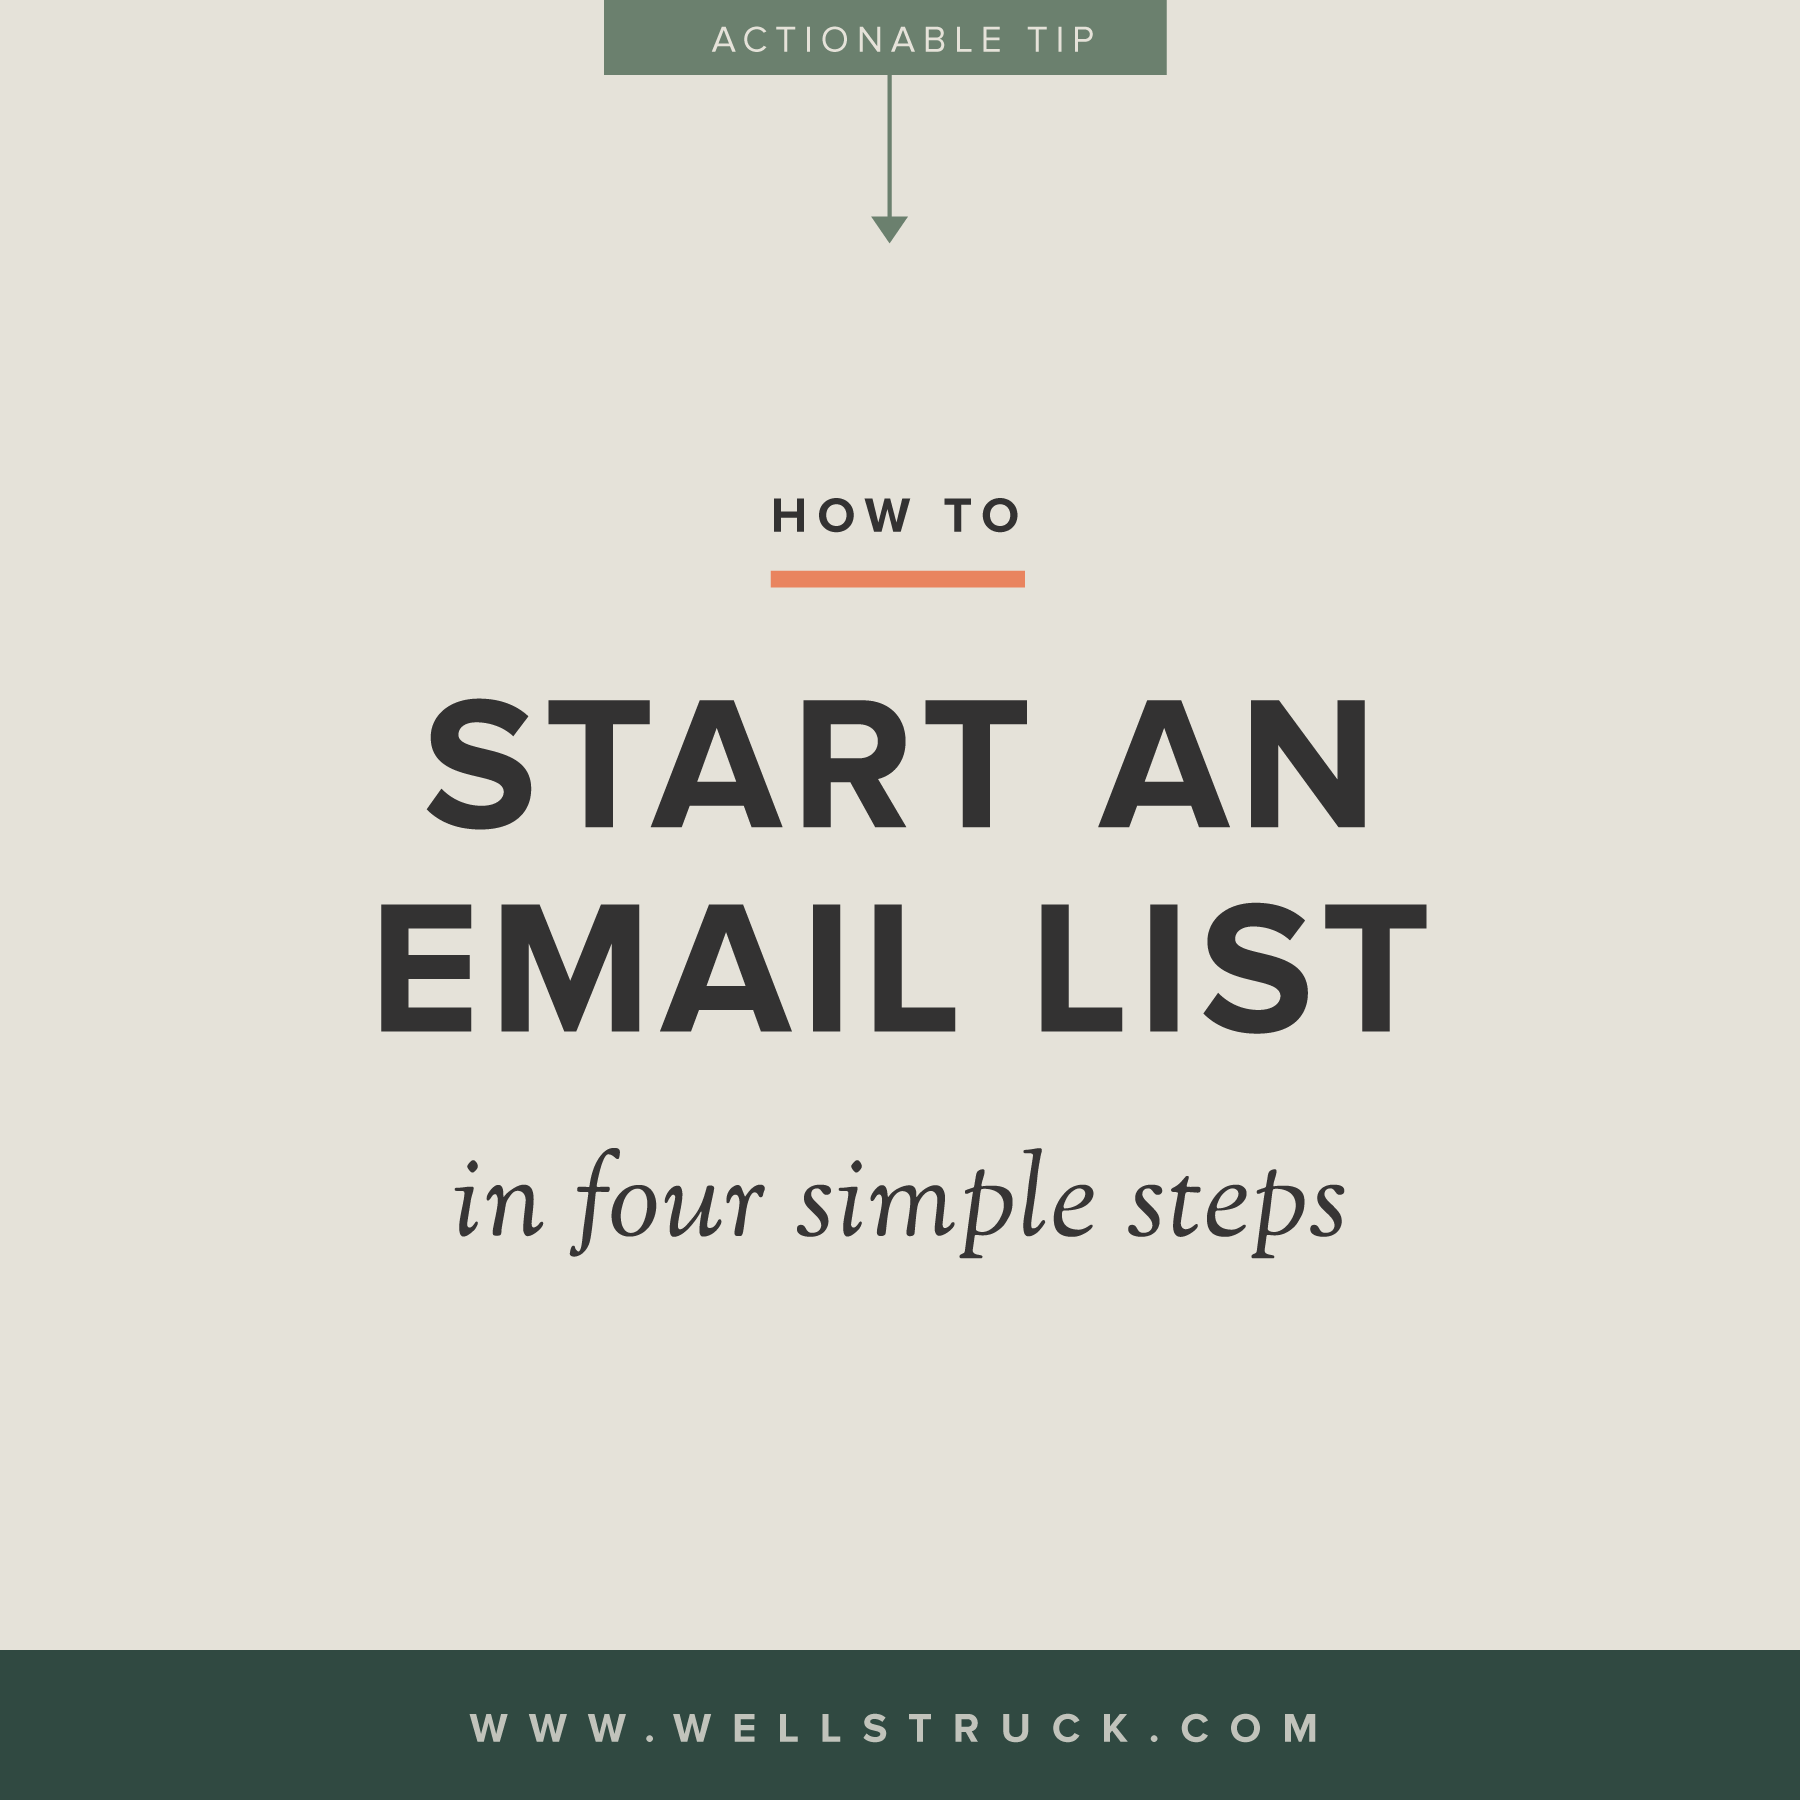 How to start an e-mail list in four simple steps